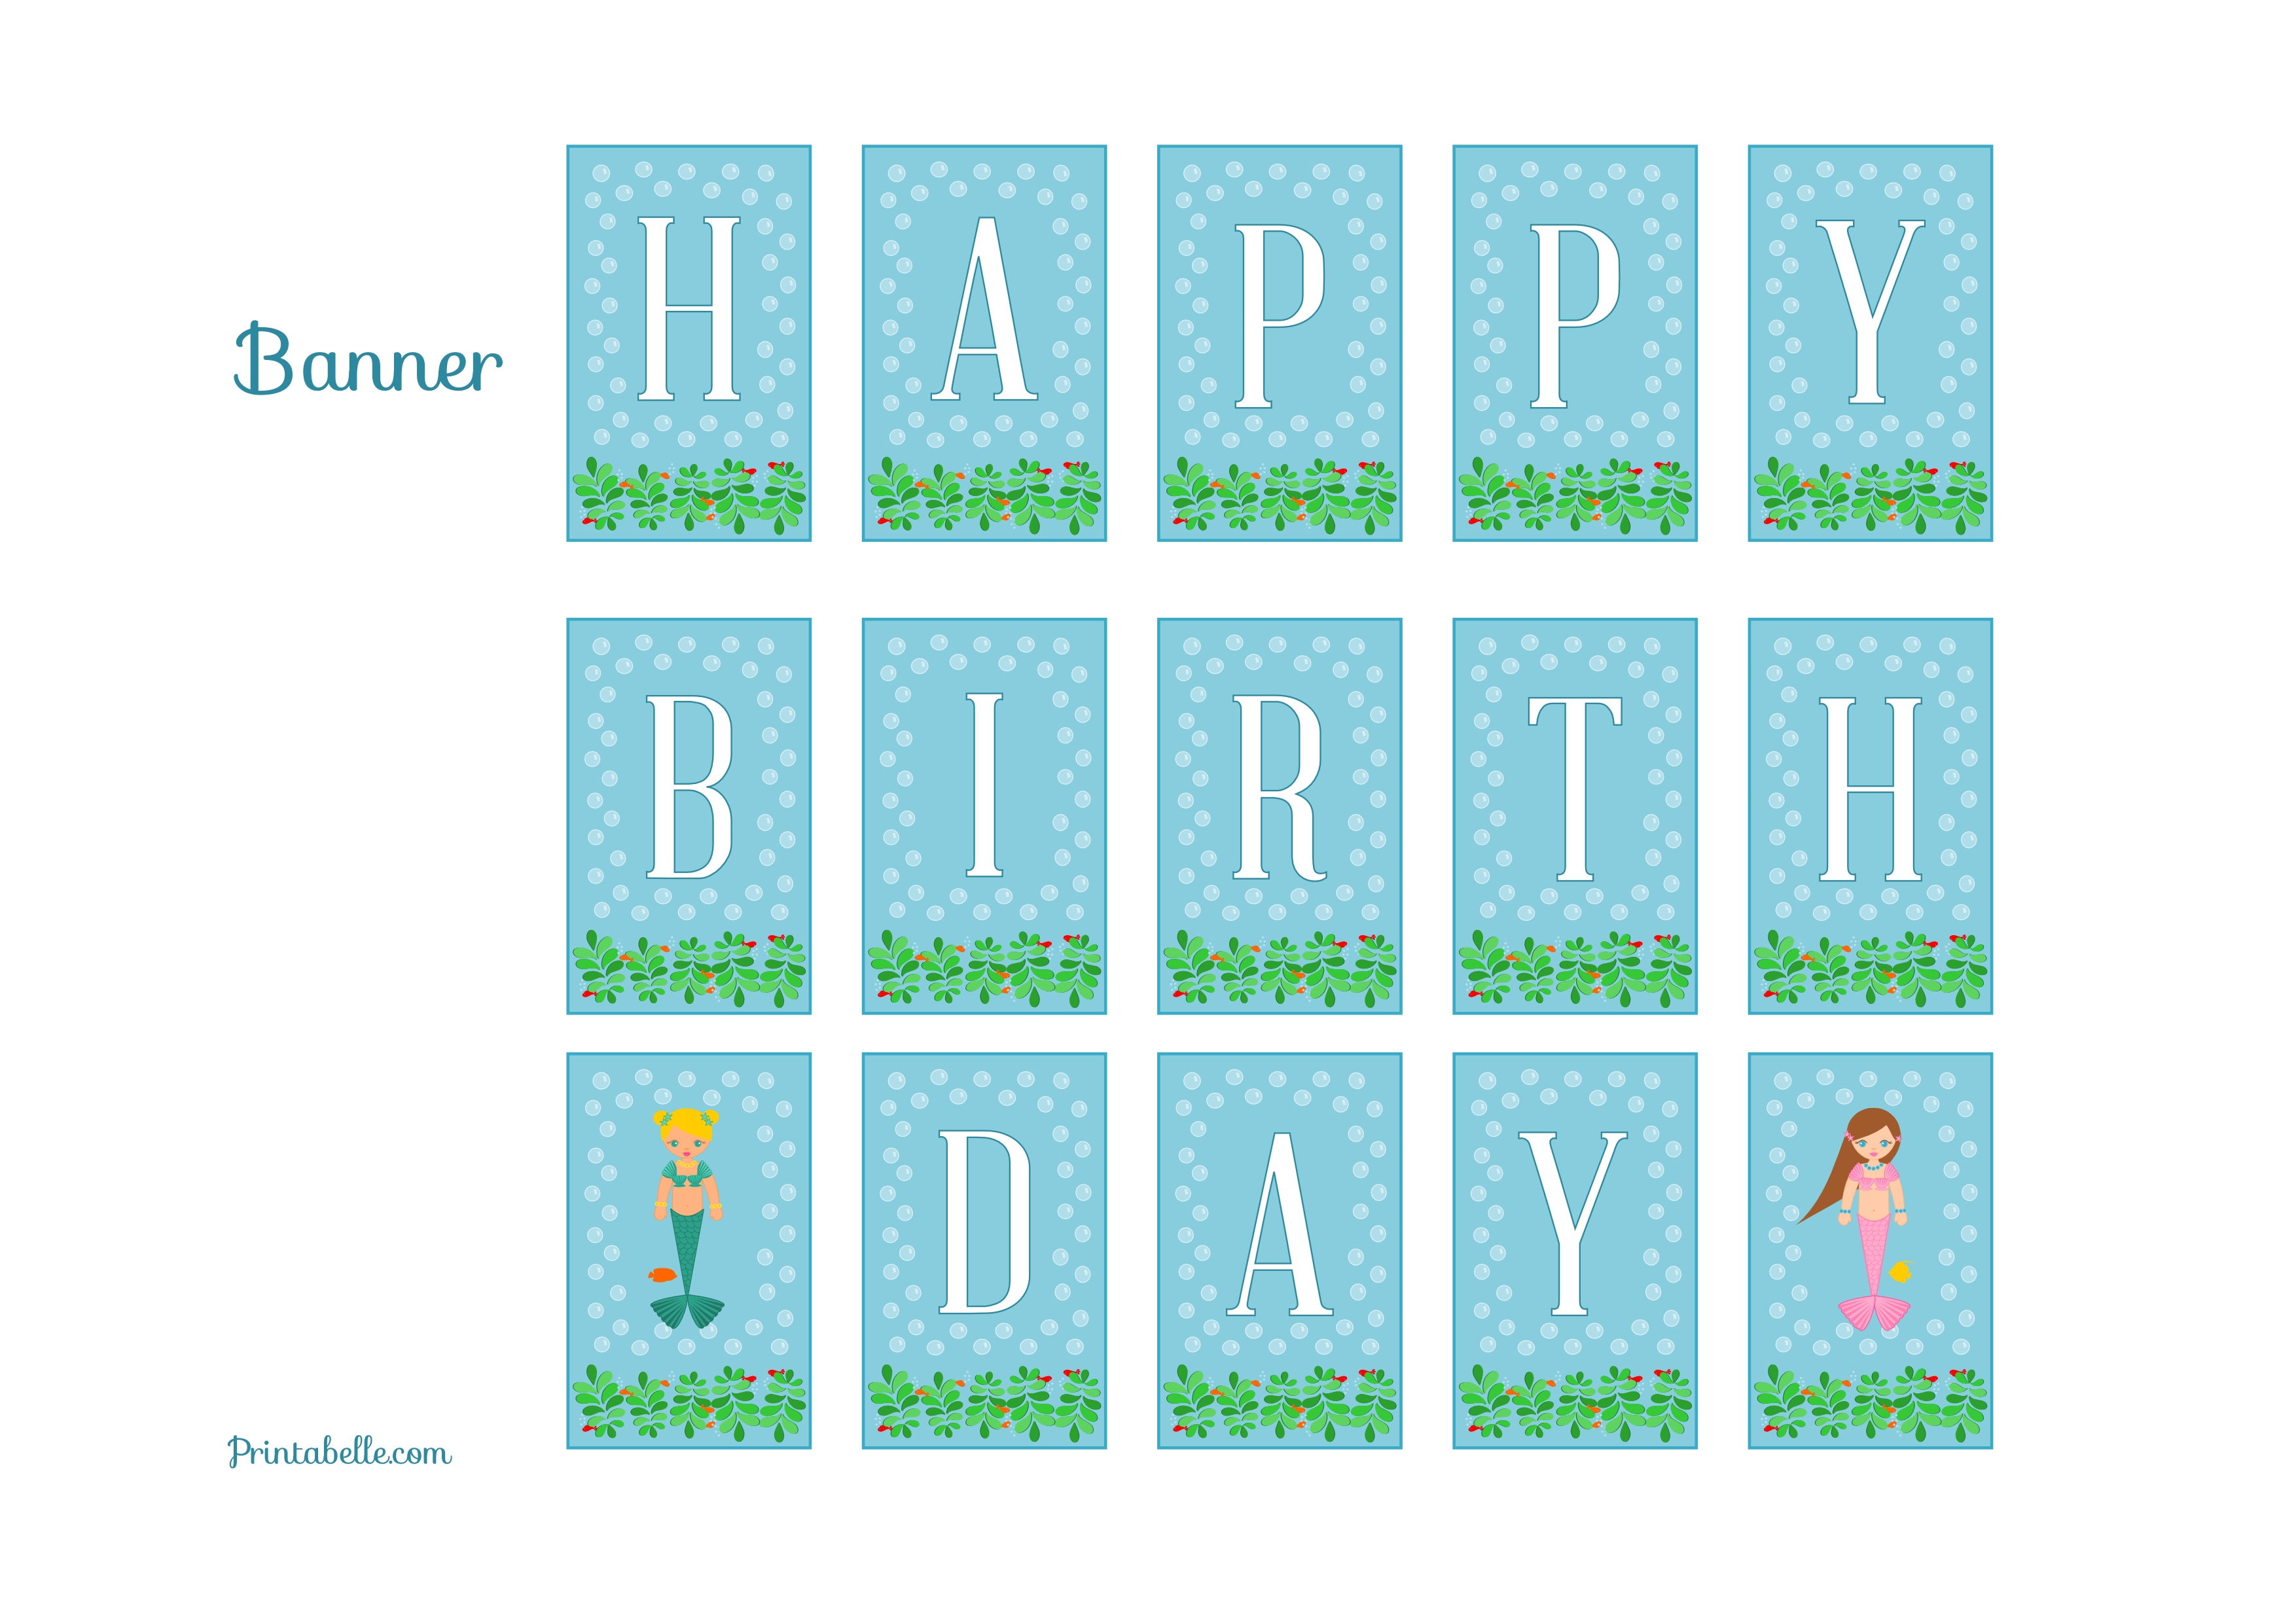 Free birthday banner images - Free Mermaid Birthday Party Printables From Printabelle